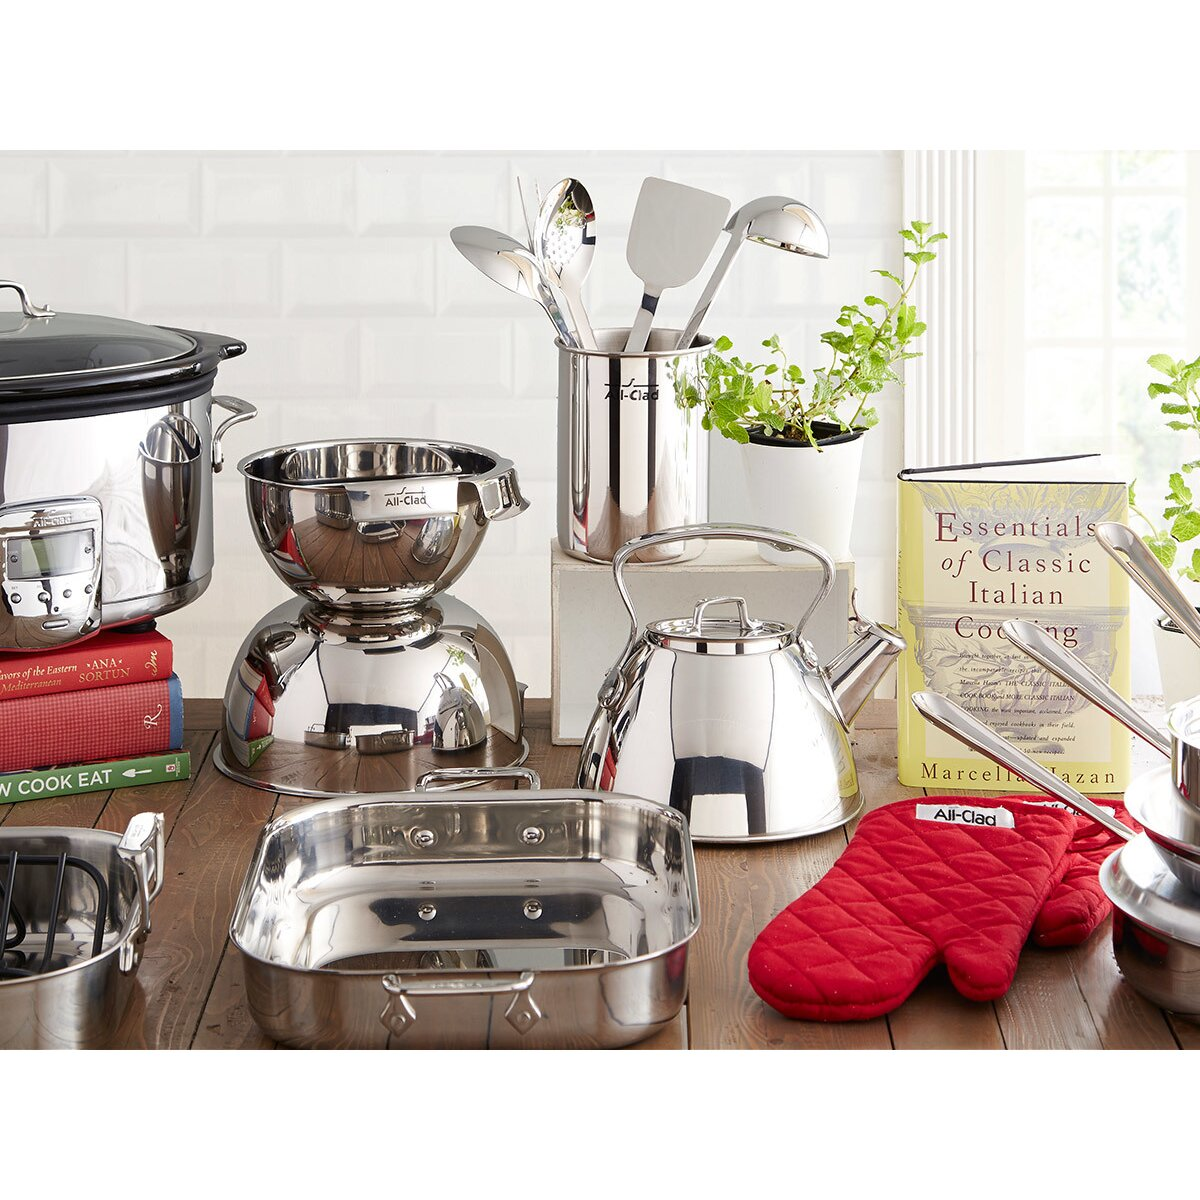 All clad stainless steel cookware sets - All Clad Stainless Steel 5 Piece Cookware Set